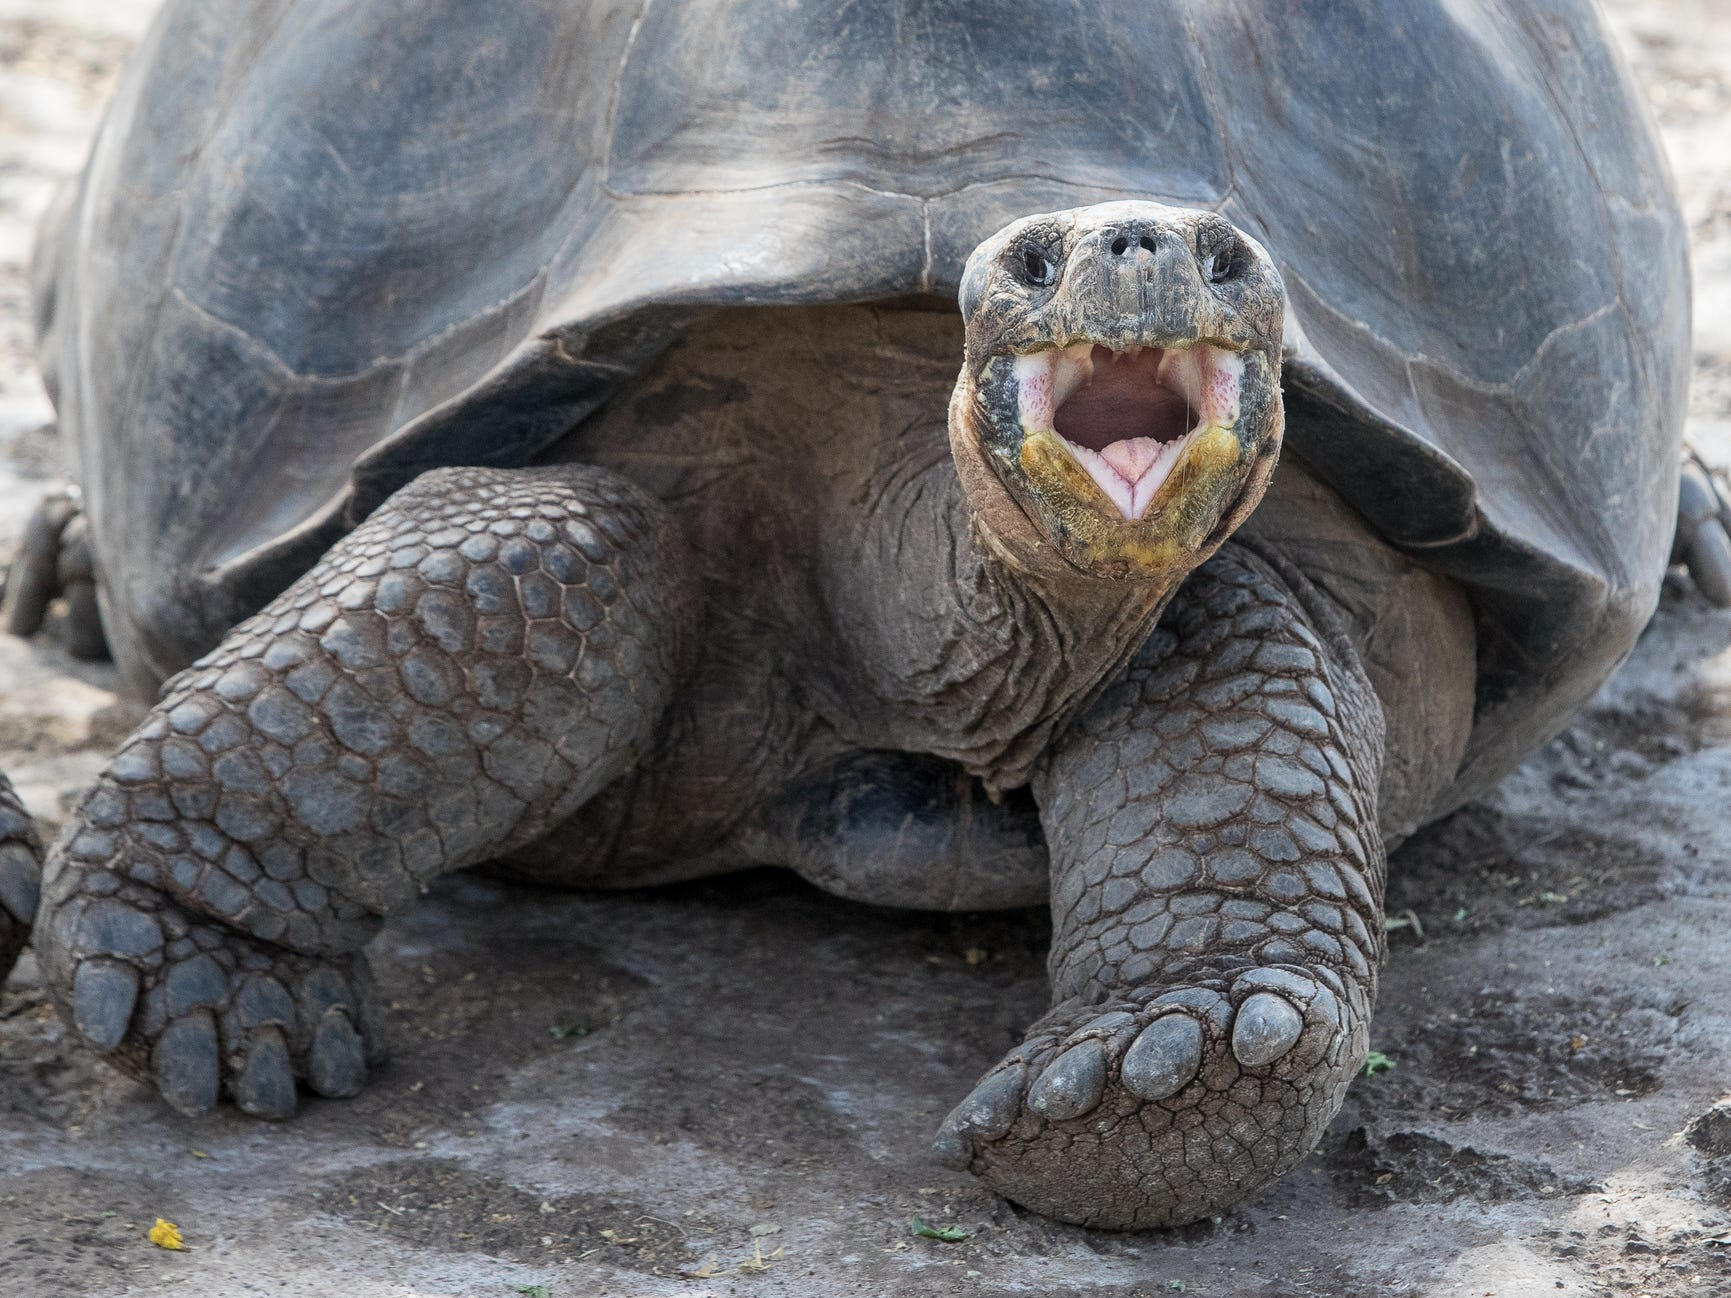 A giant tortoise in the Galapagos Islands, Ecuador.